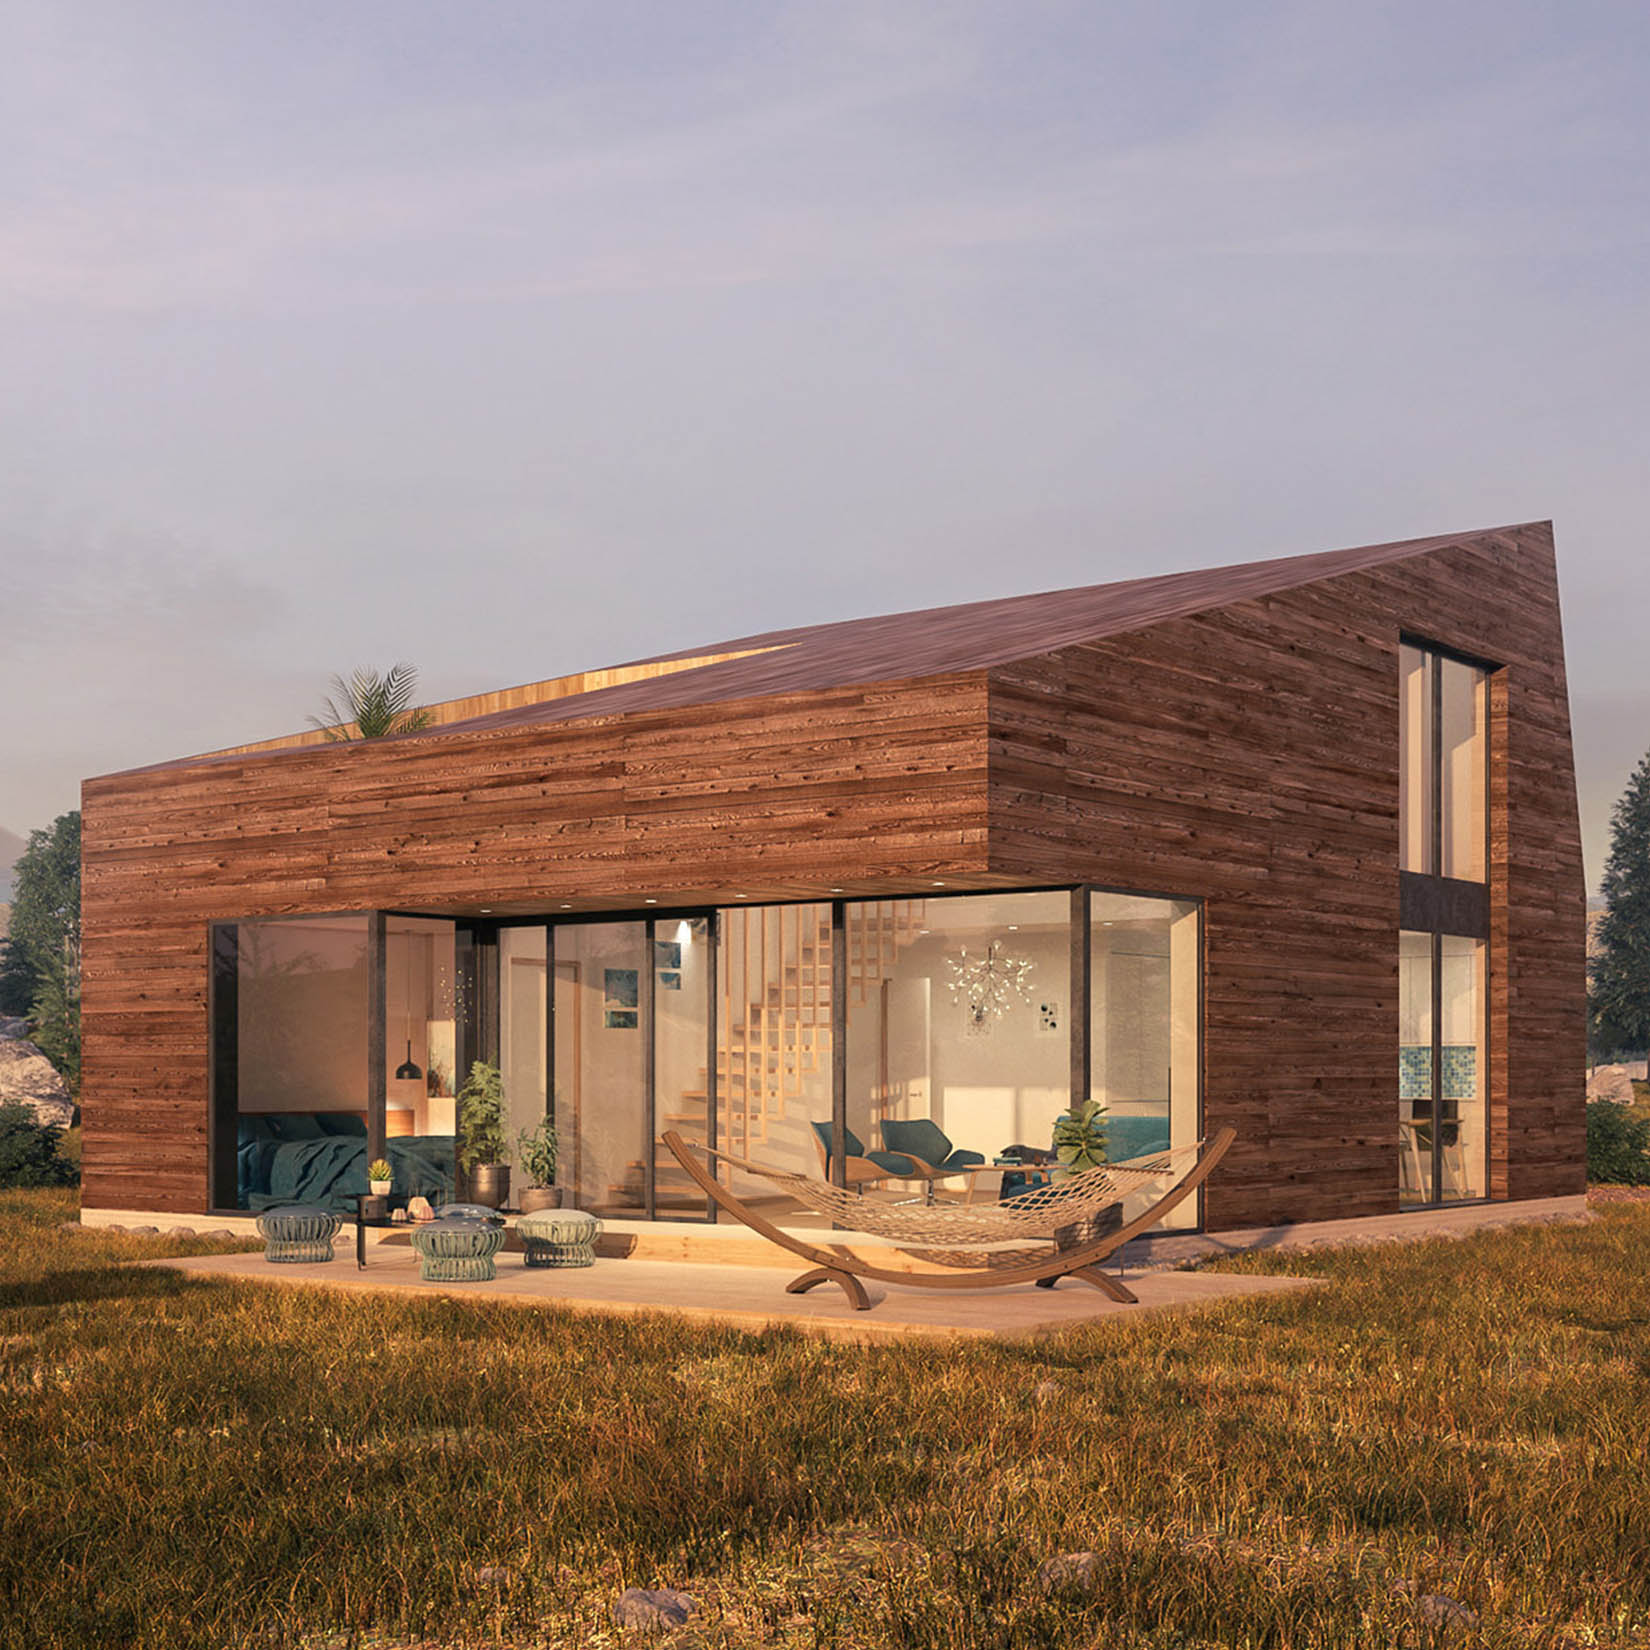 Exterior visualization of a readymade mountain cabin